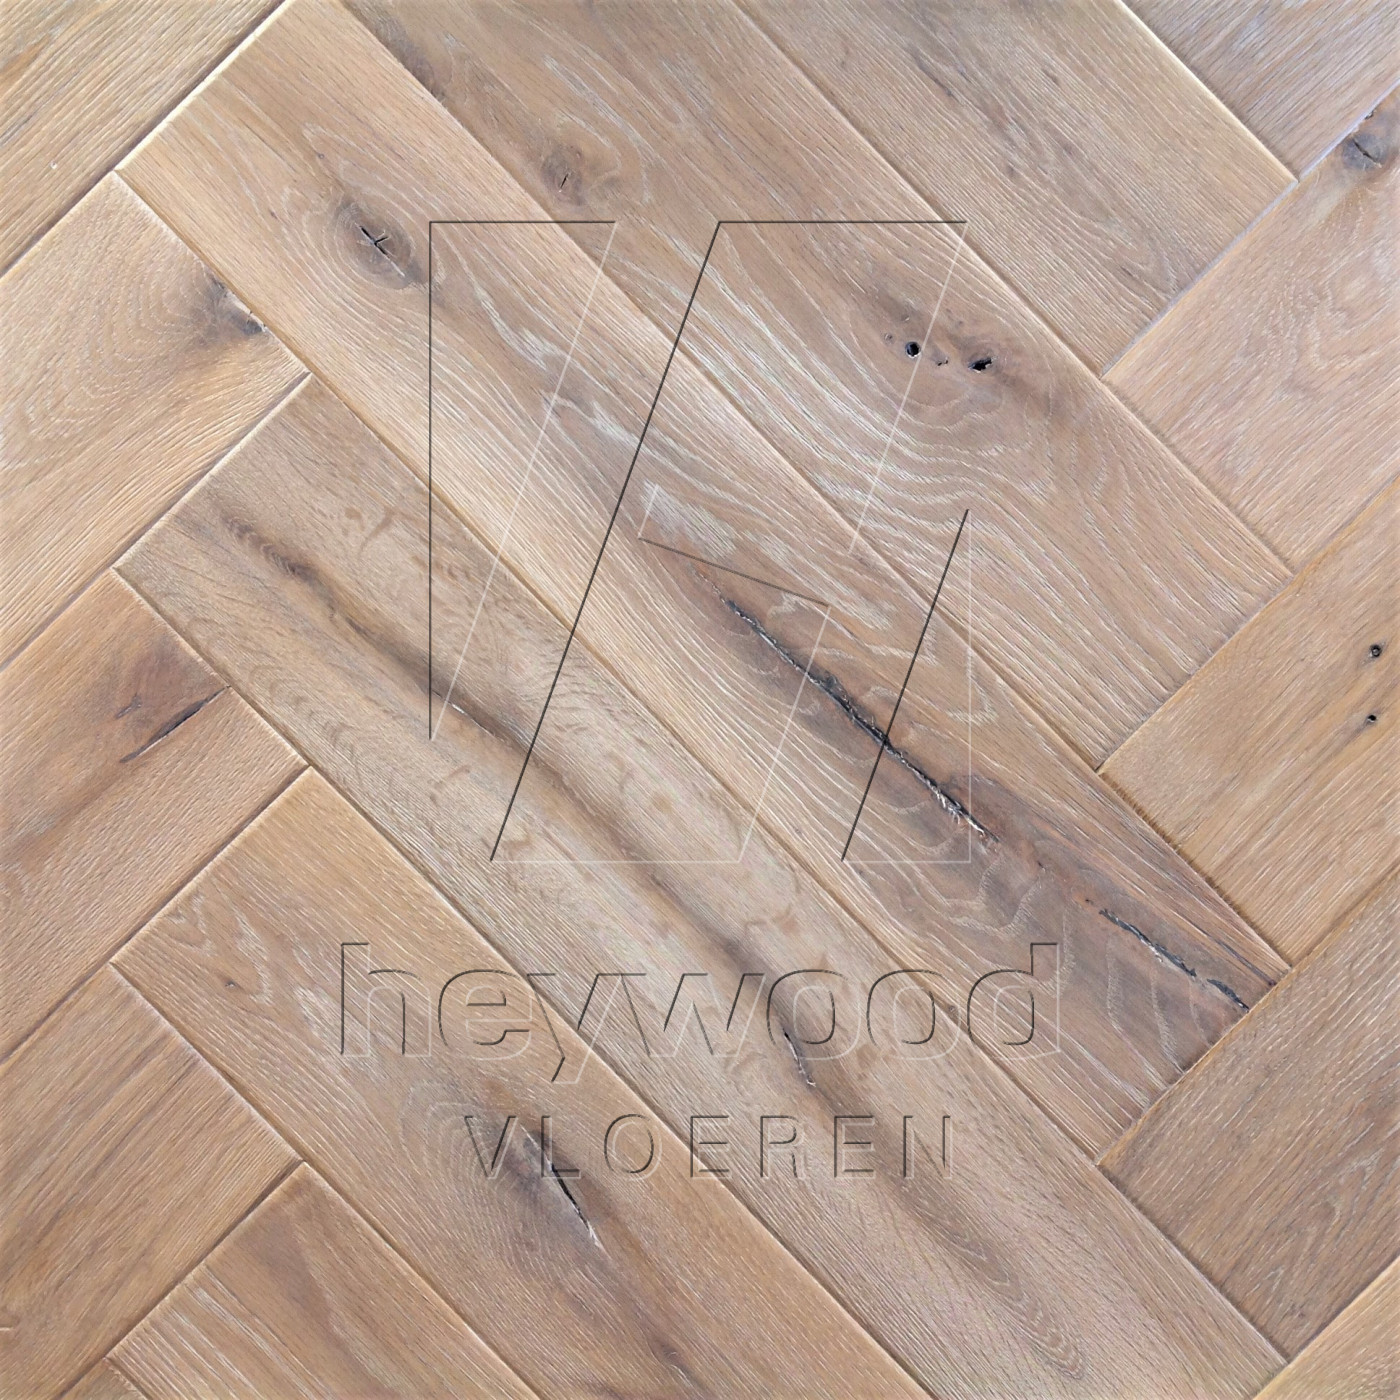 Antique Herringbone 'Mont Blanc' in Herringbone of Pattern & Panel Floors